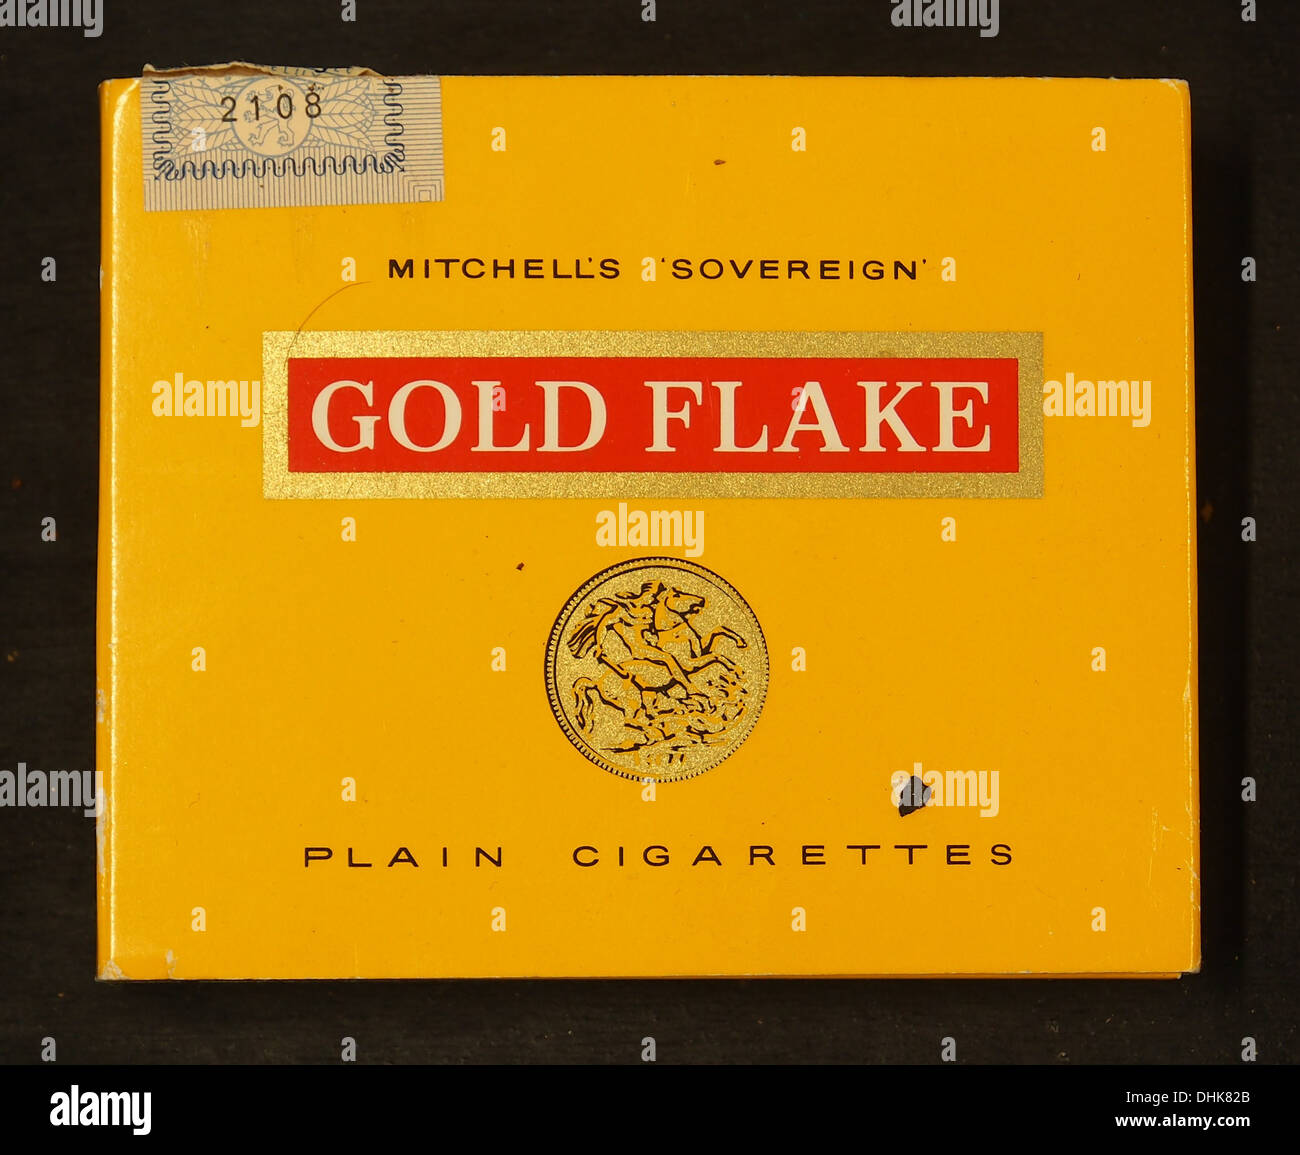 Gold Flake cigarettes, Mitchells Sovereign - Stock Image